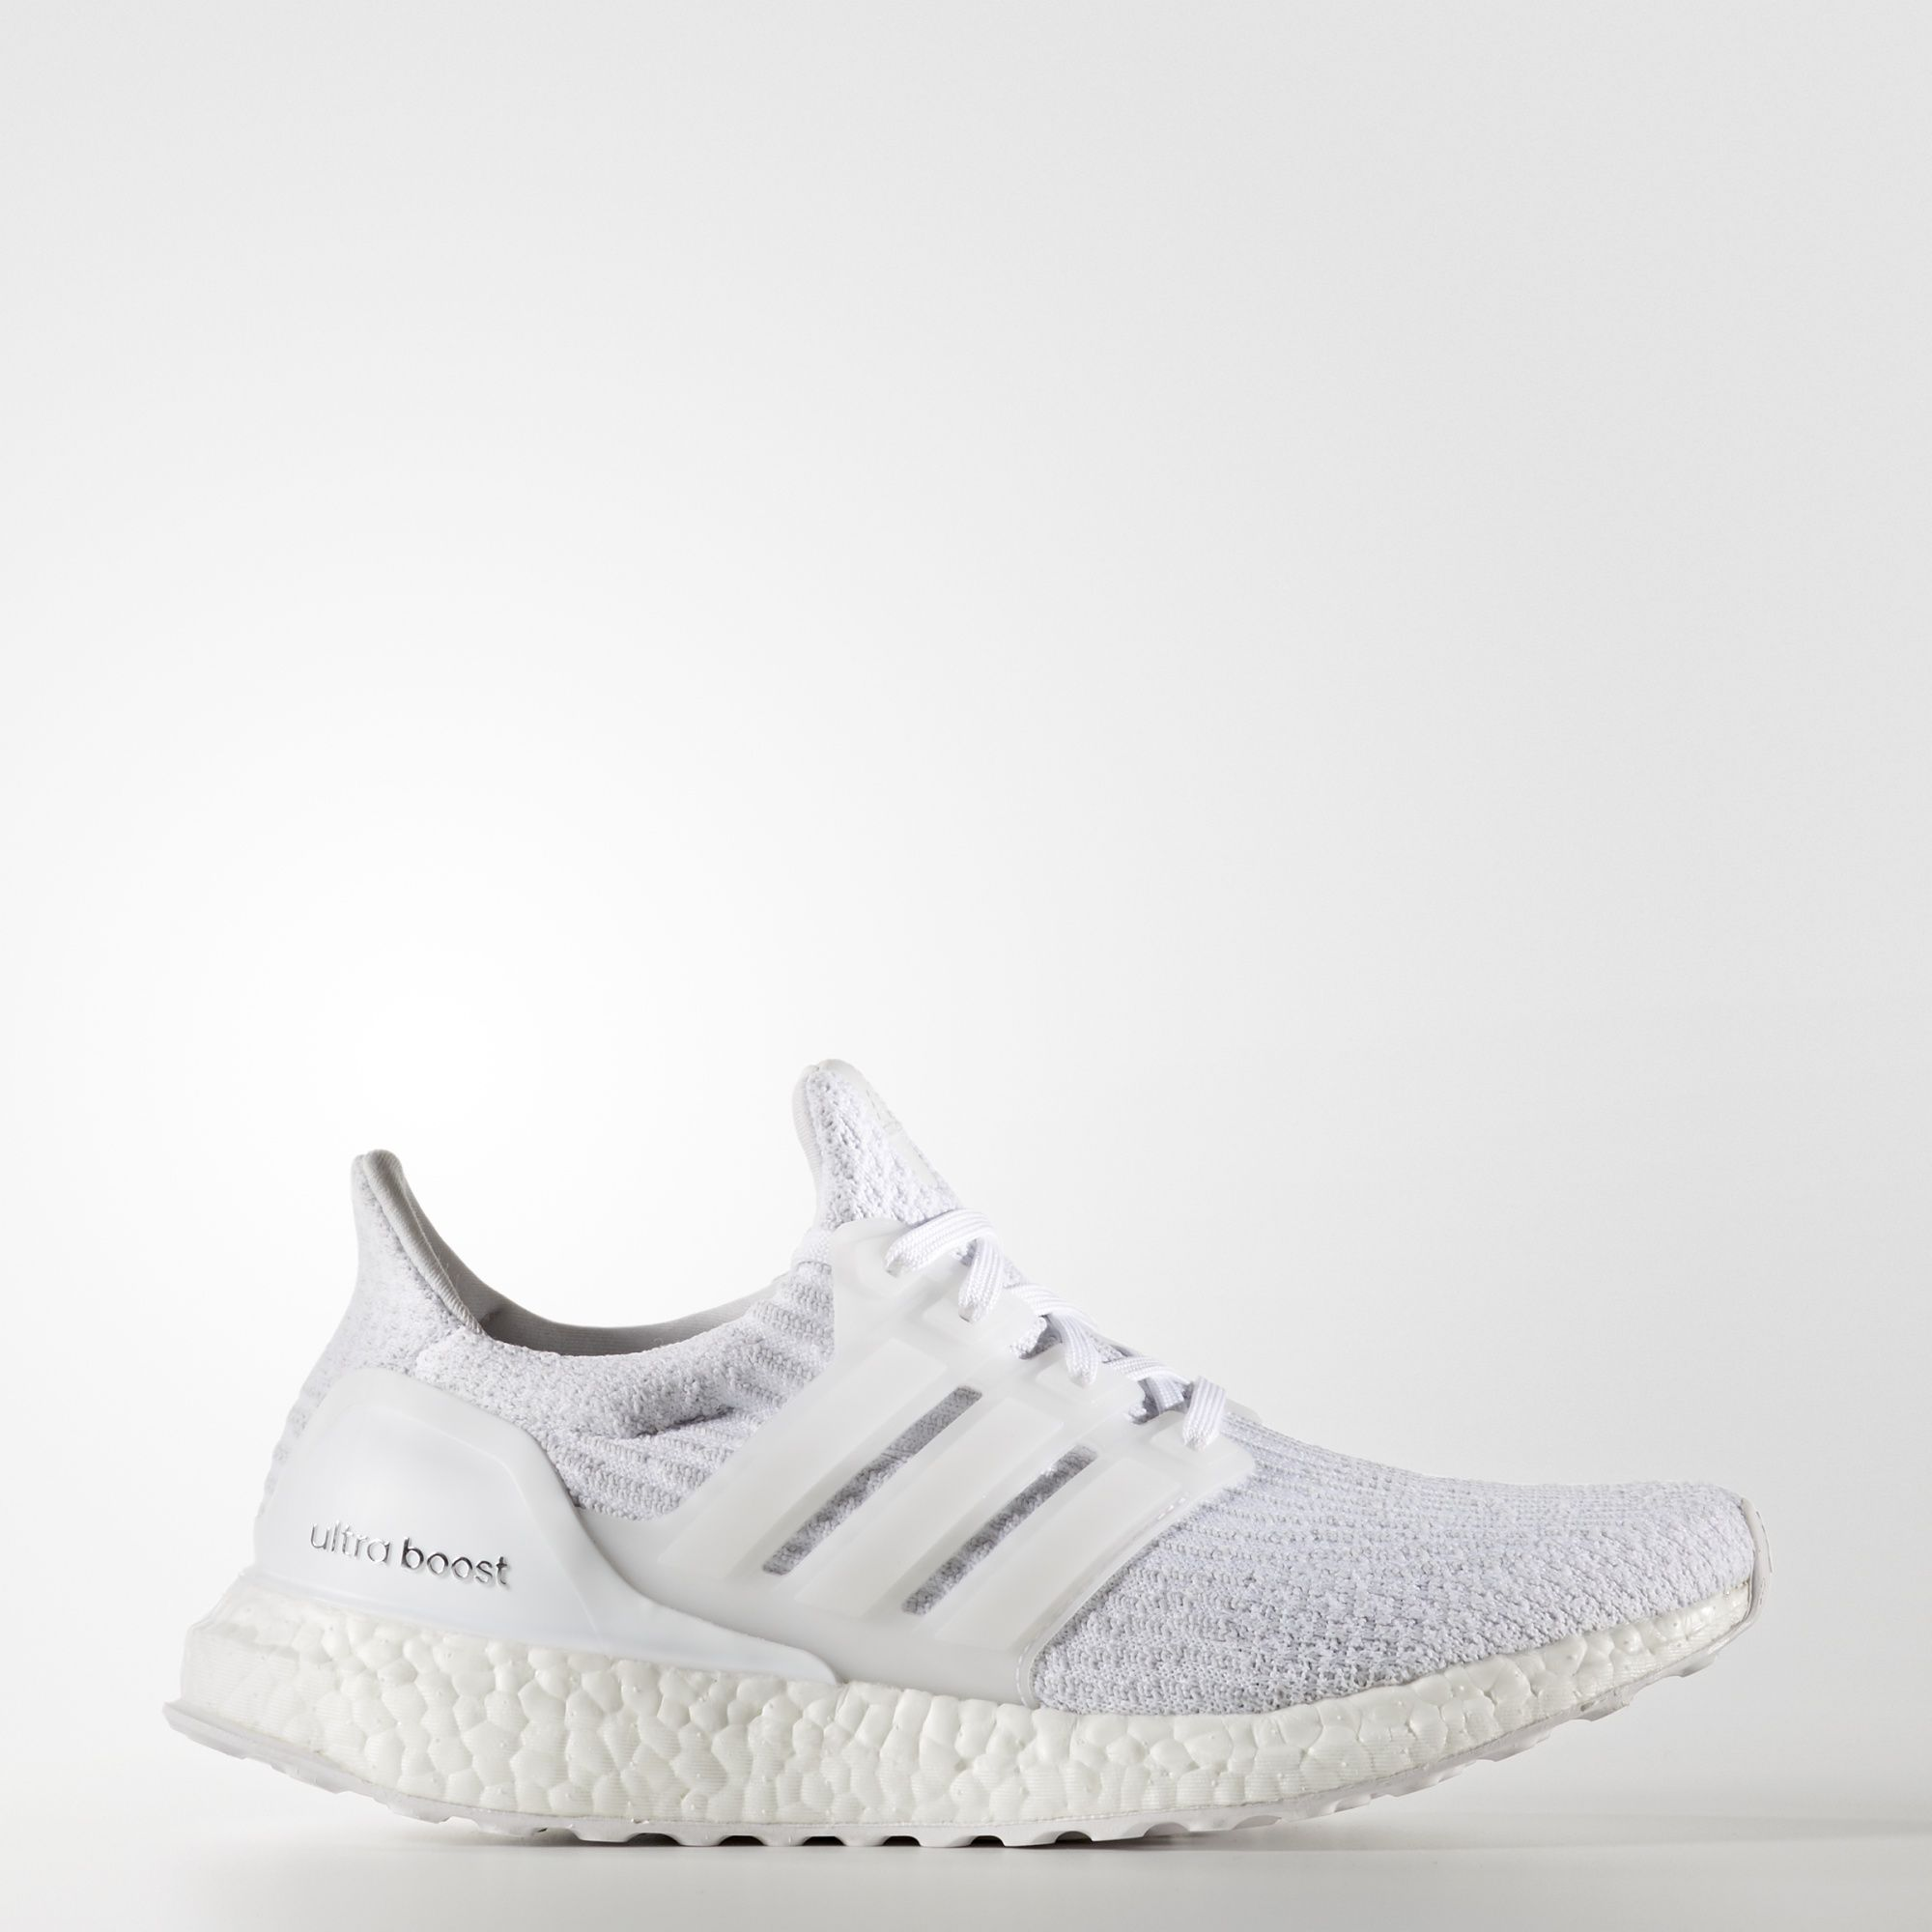 adidas ultra boost femme, adidas - Chaussure Ultra Boost Footwear White/Crystal White BA7686